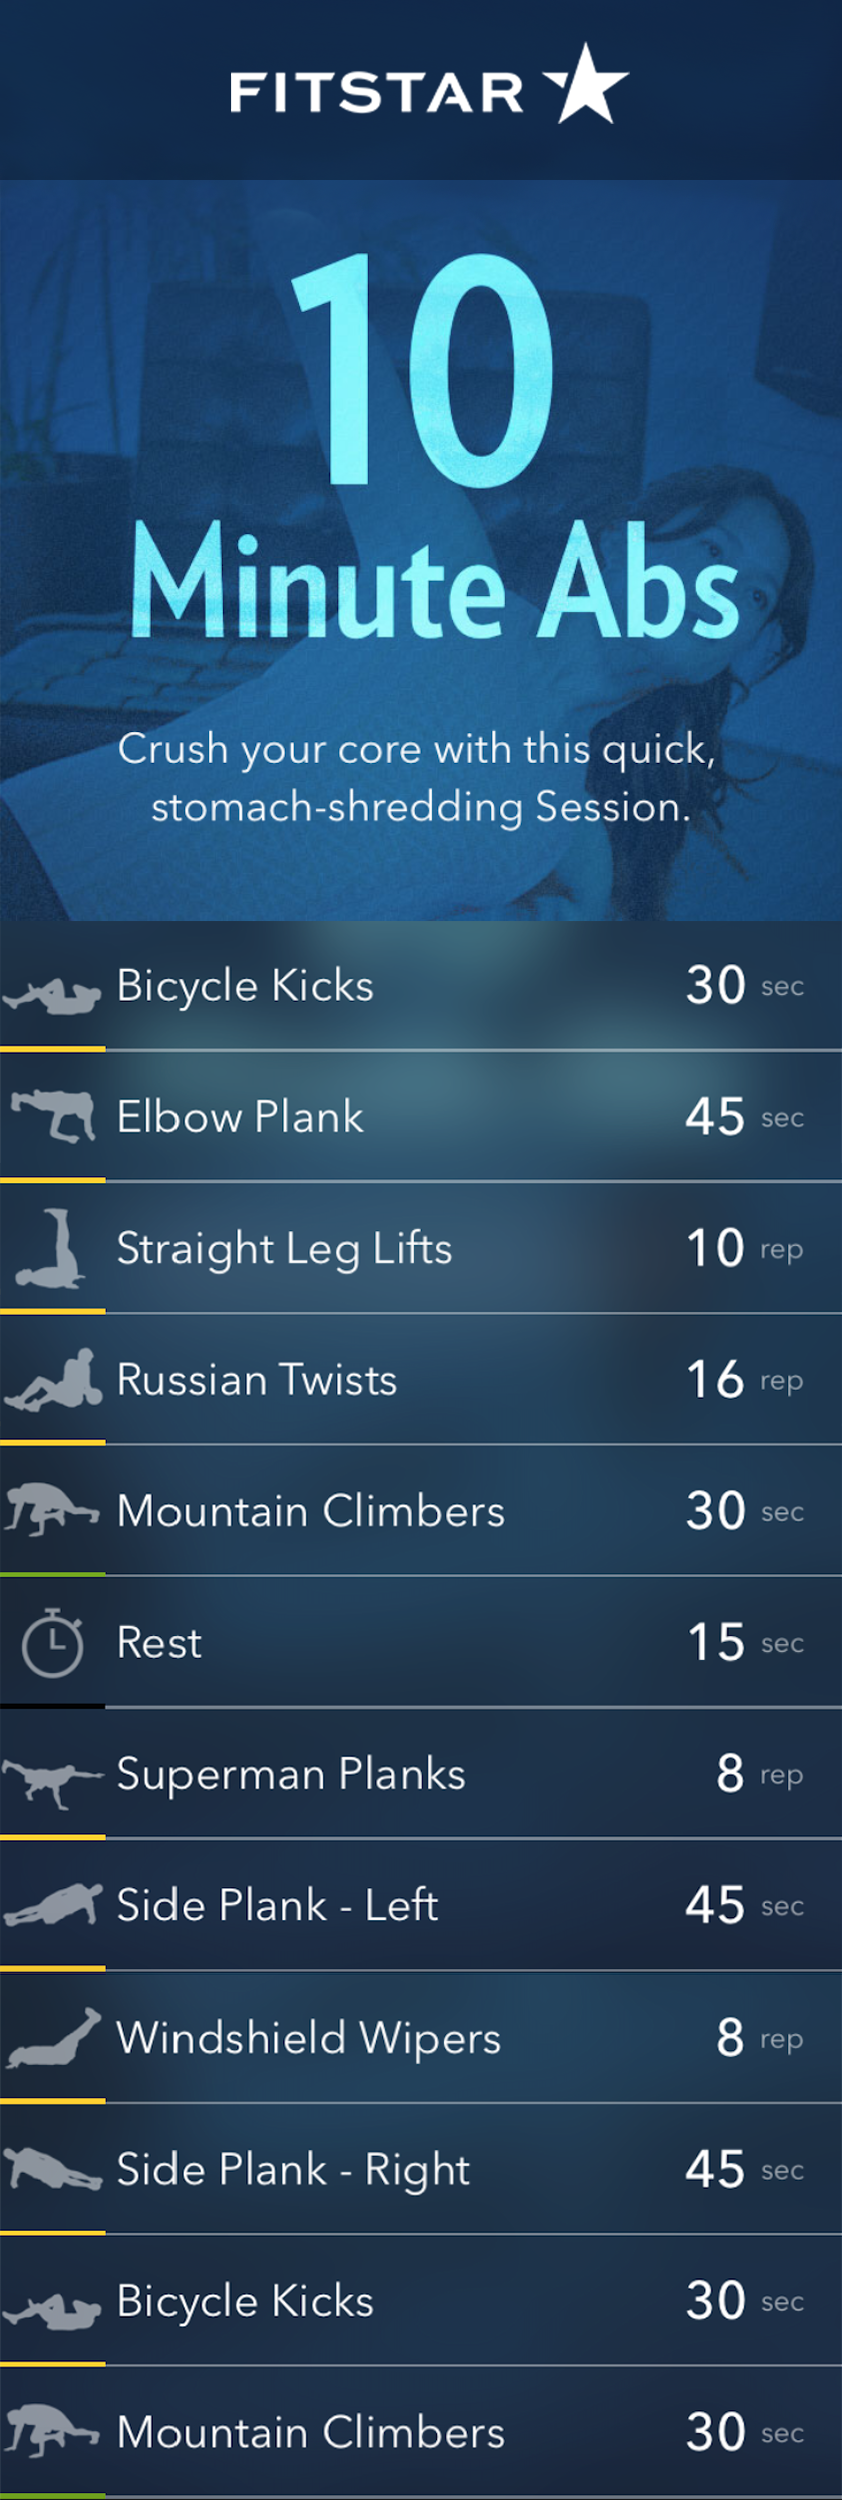 A 10 Minute Ab Workout From Fitstar To Rock Your Core 10